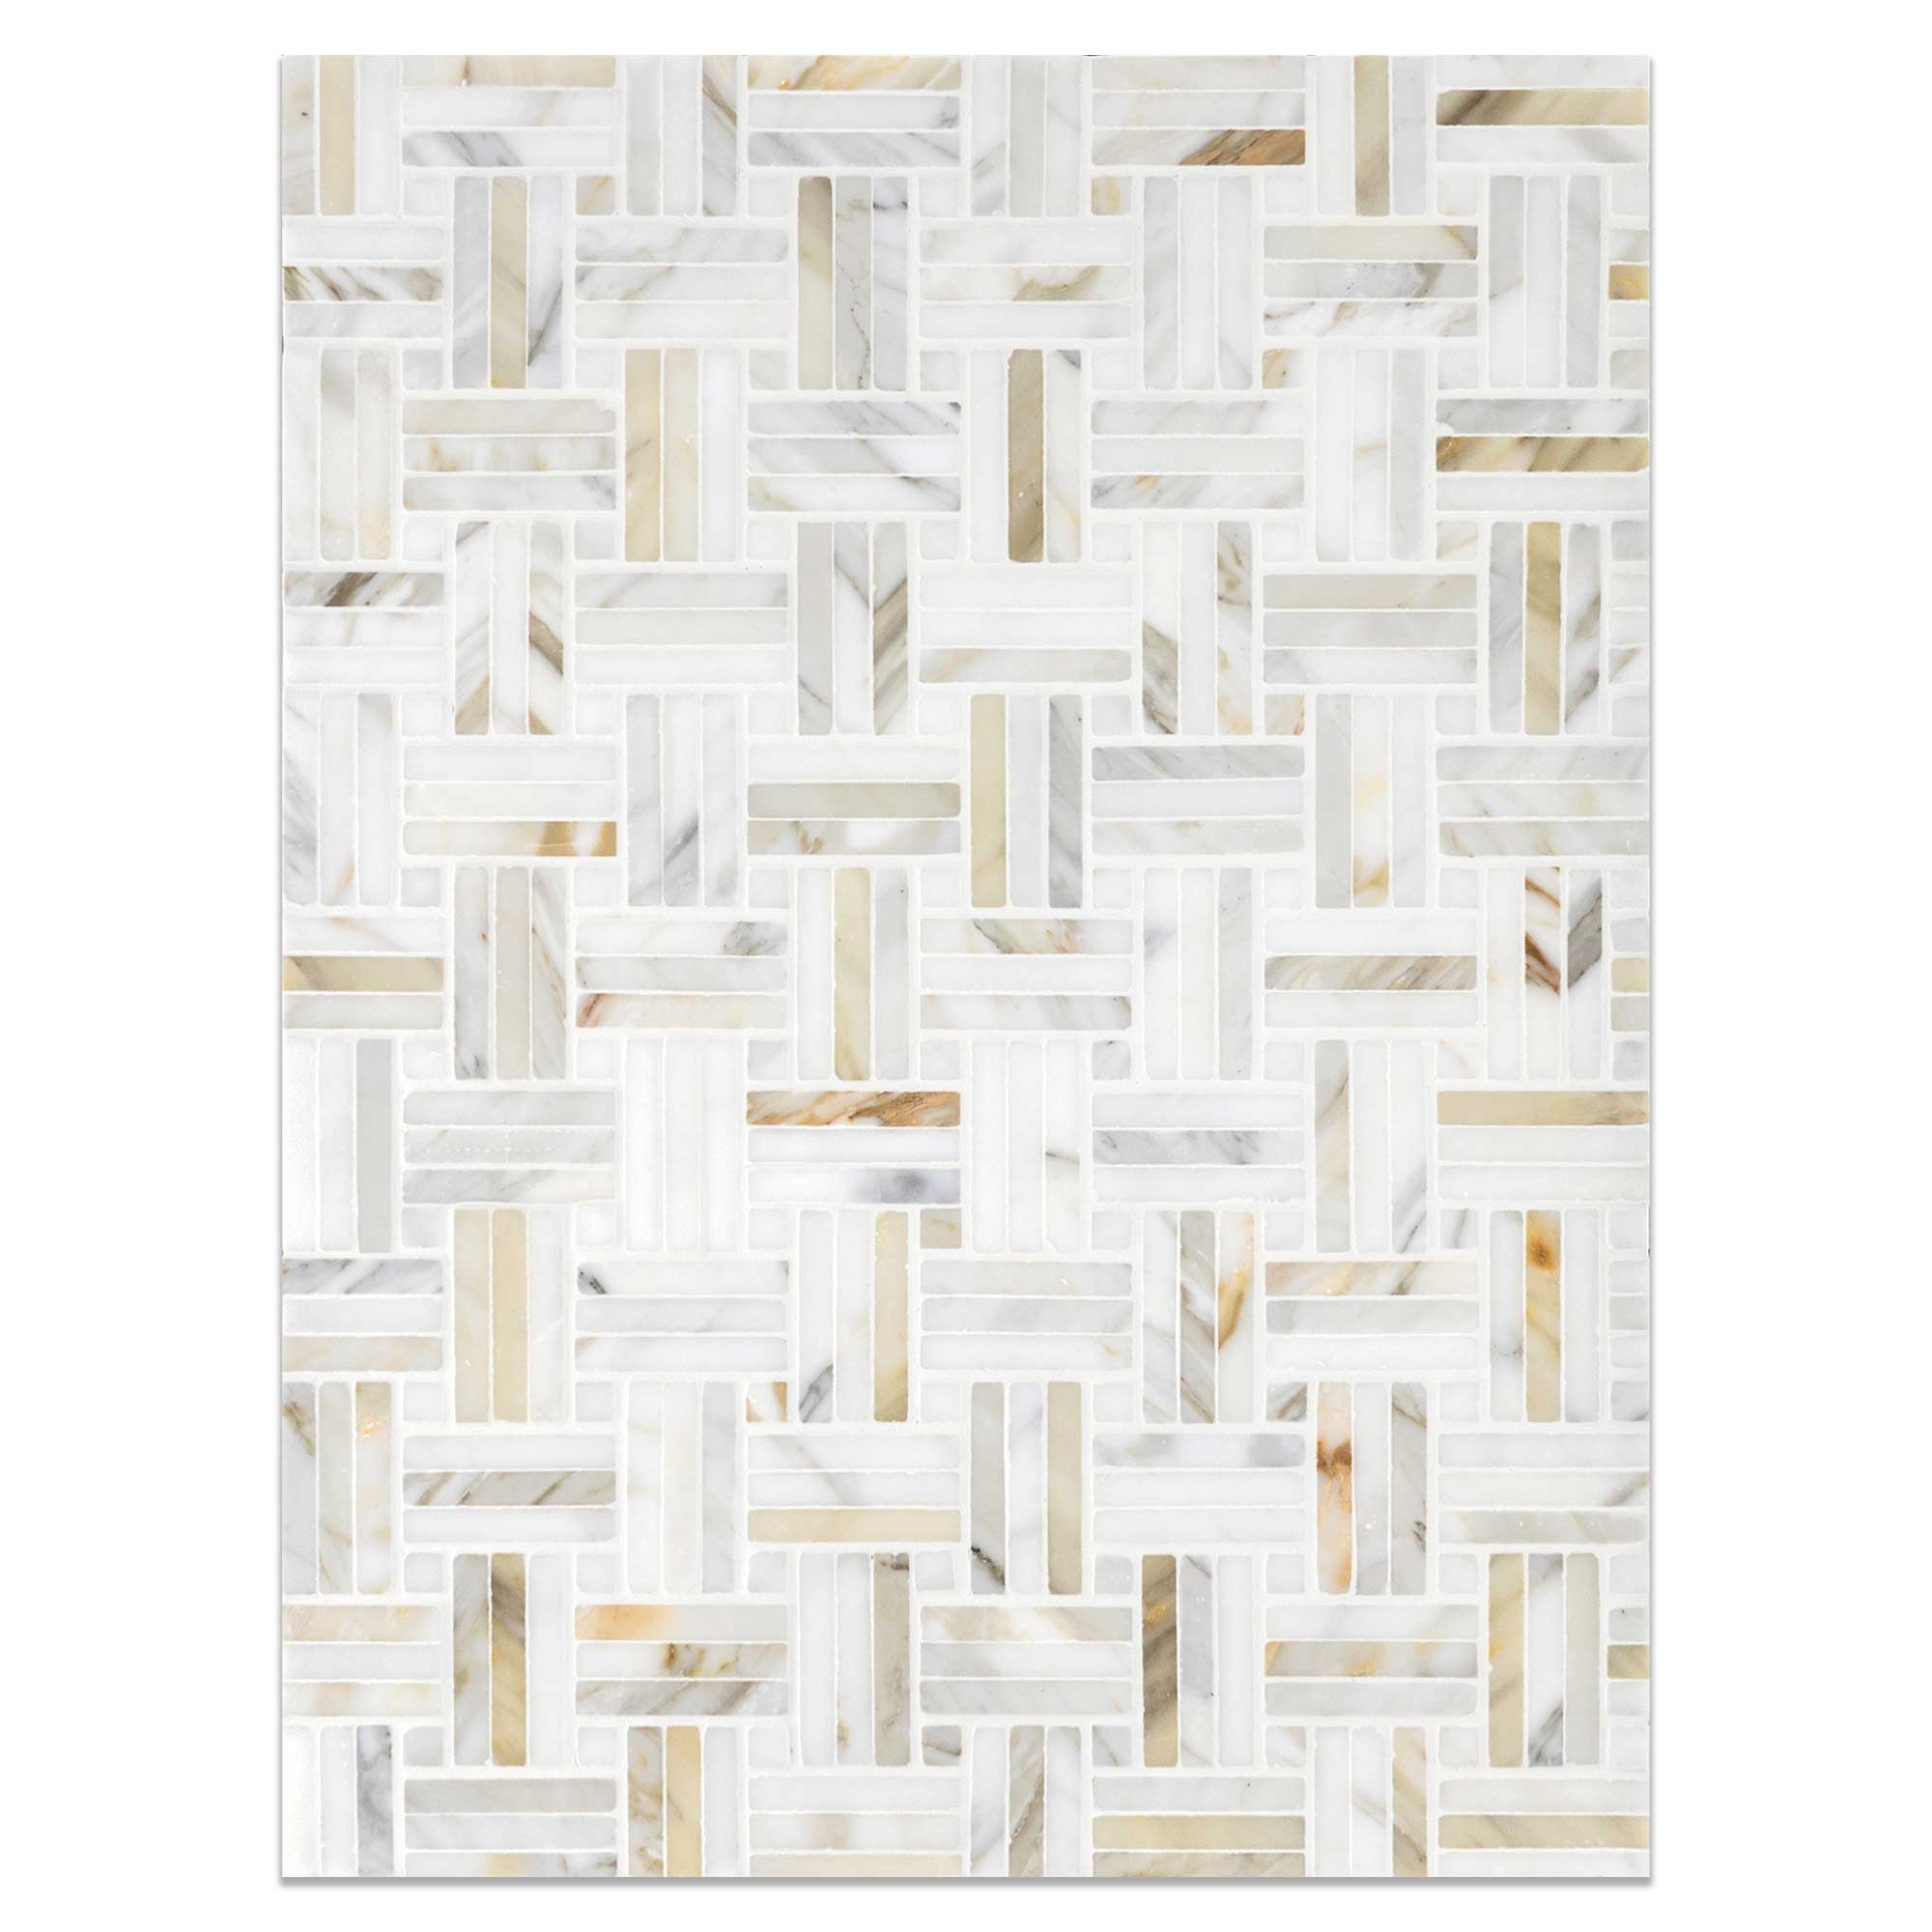 Triweave Mosaic Boards